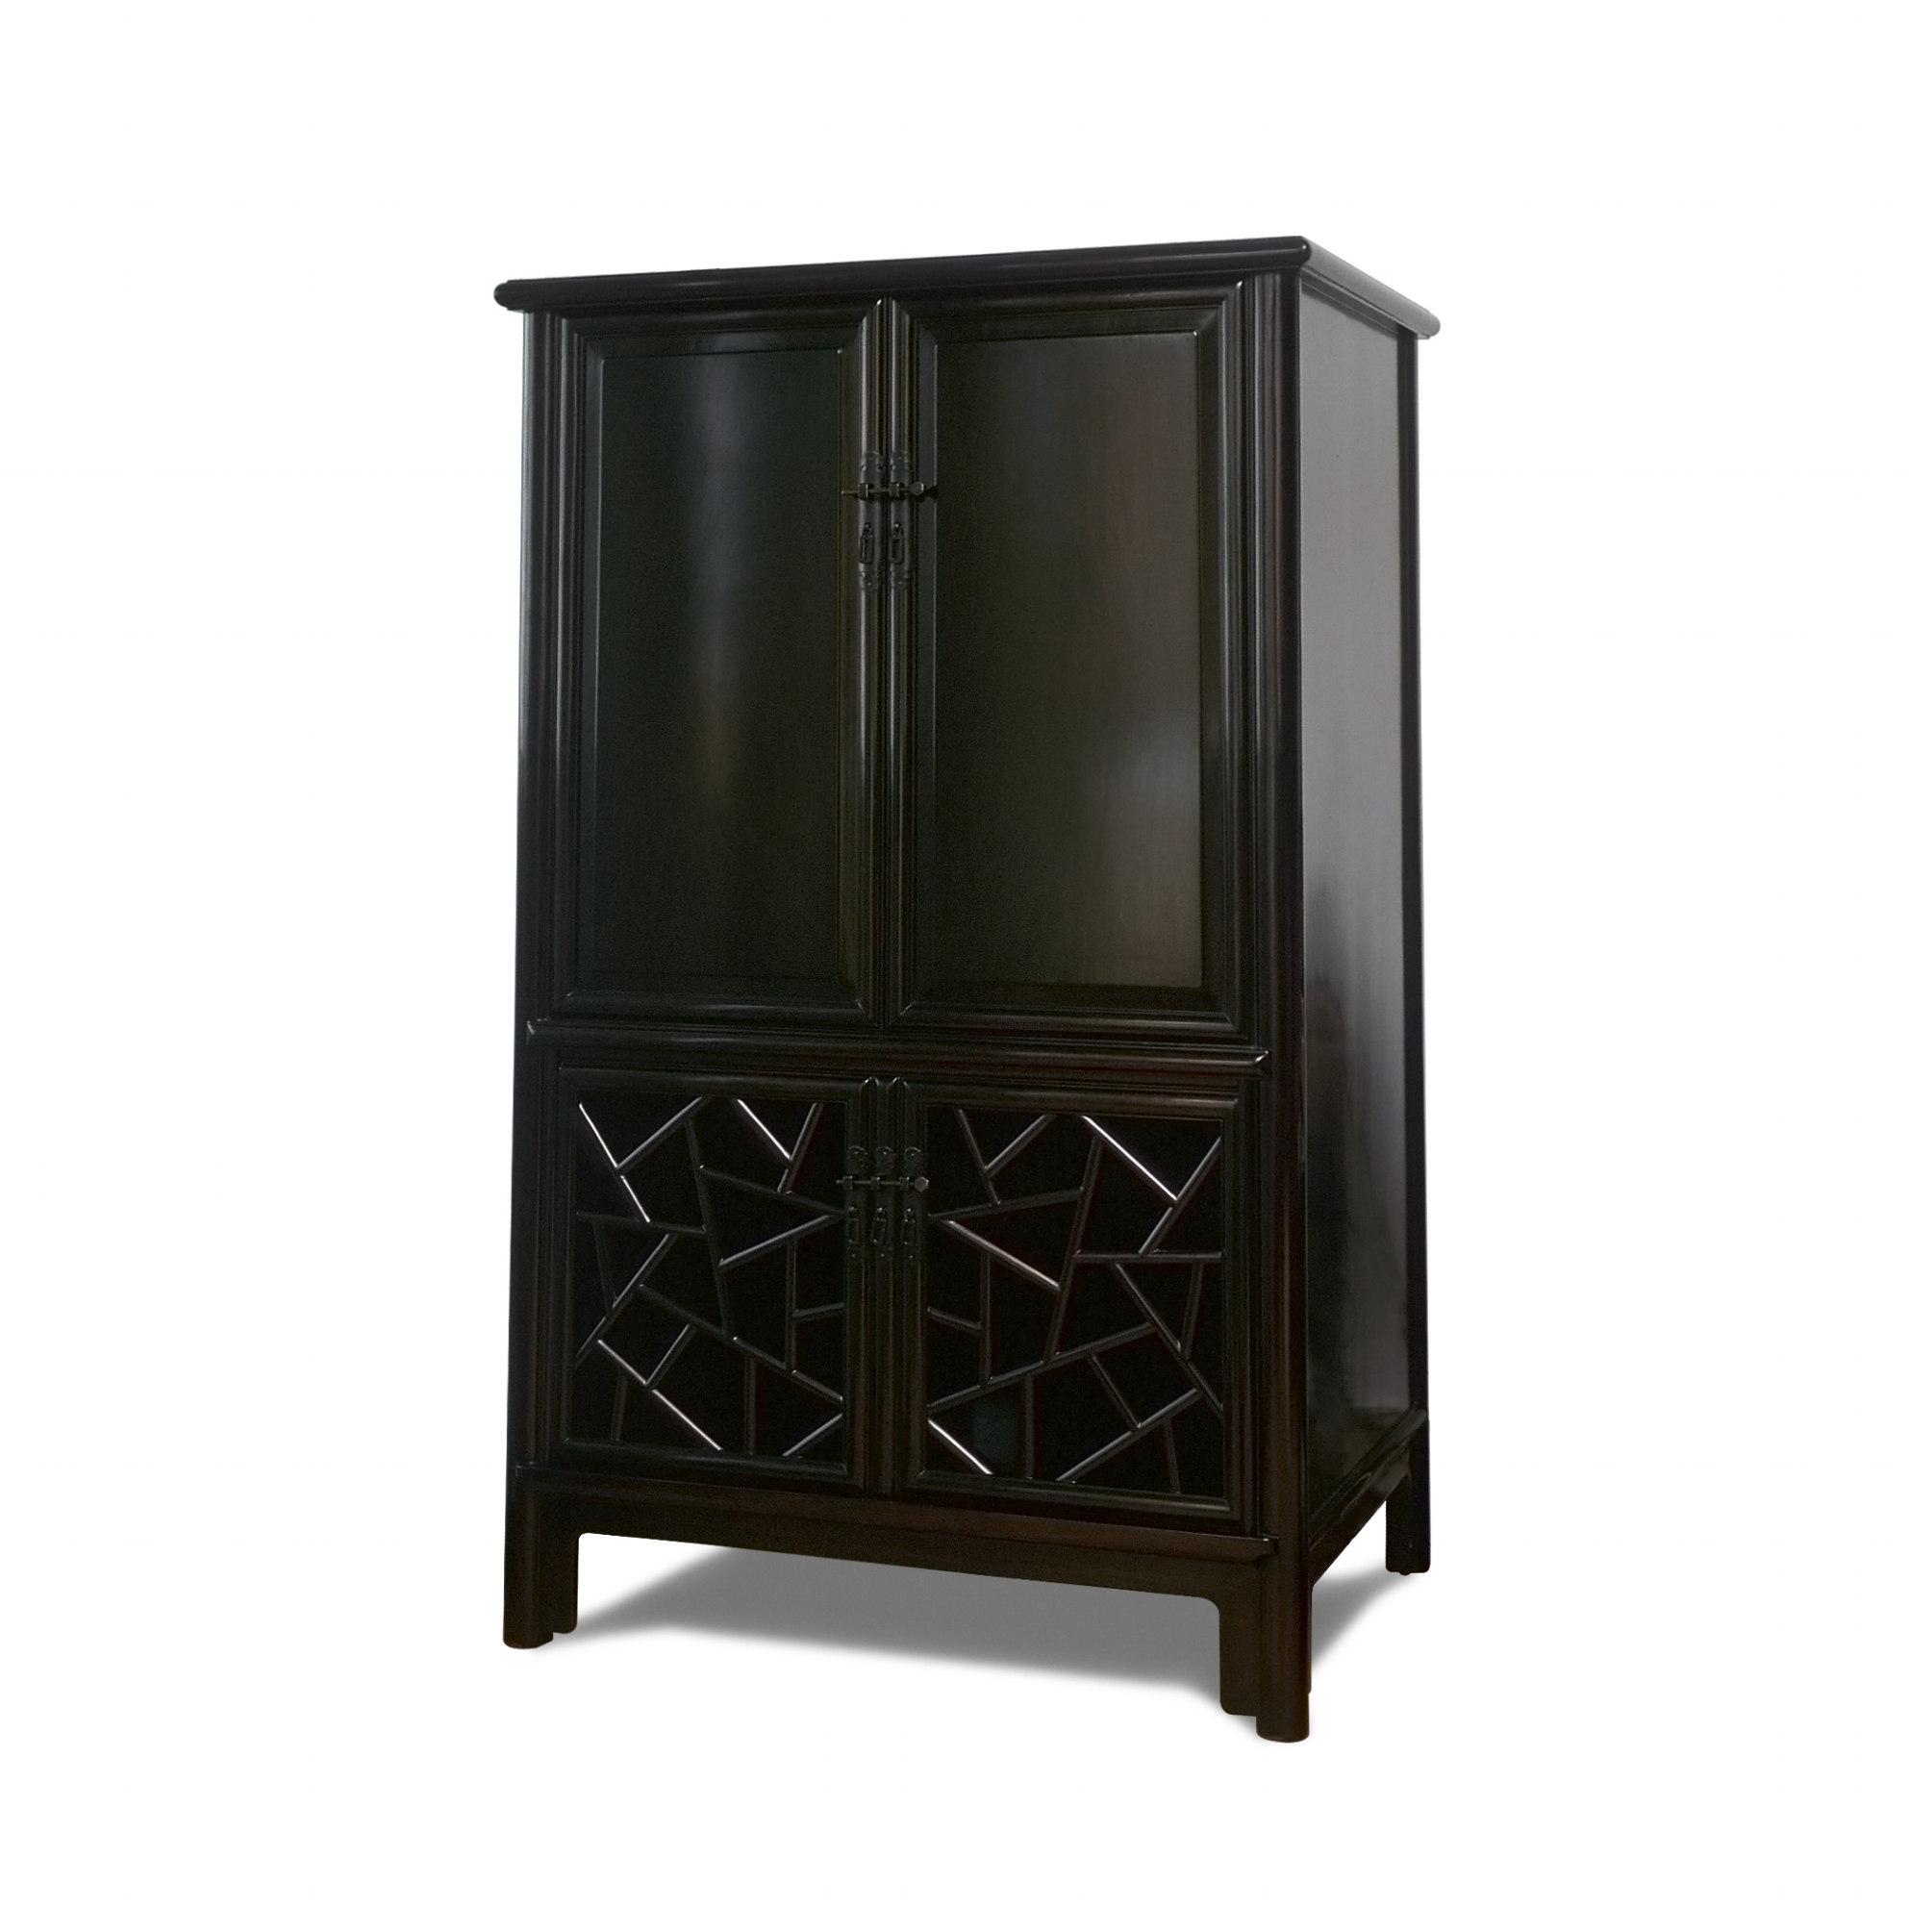 ....Chinese Ming style furniture : cabinet..中式明式家具:面条柜....